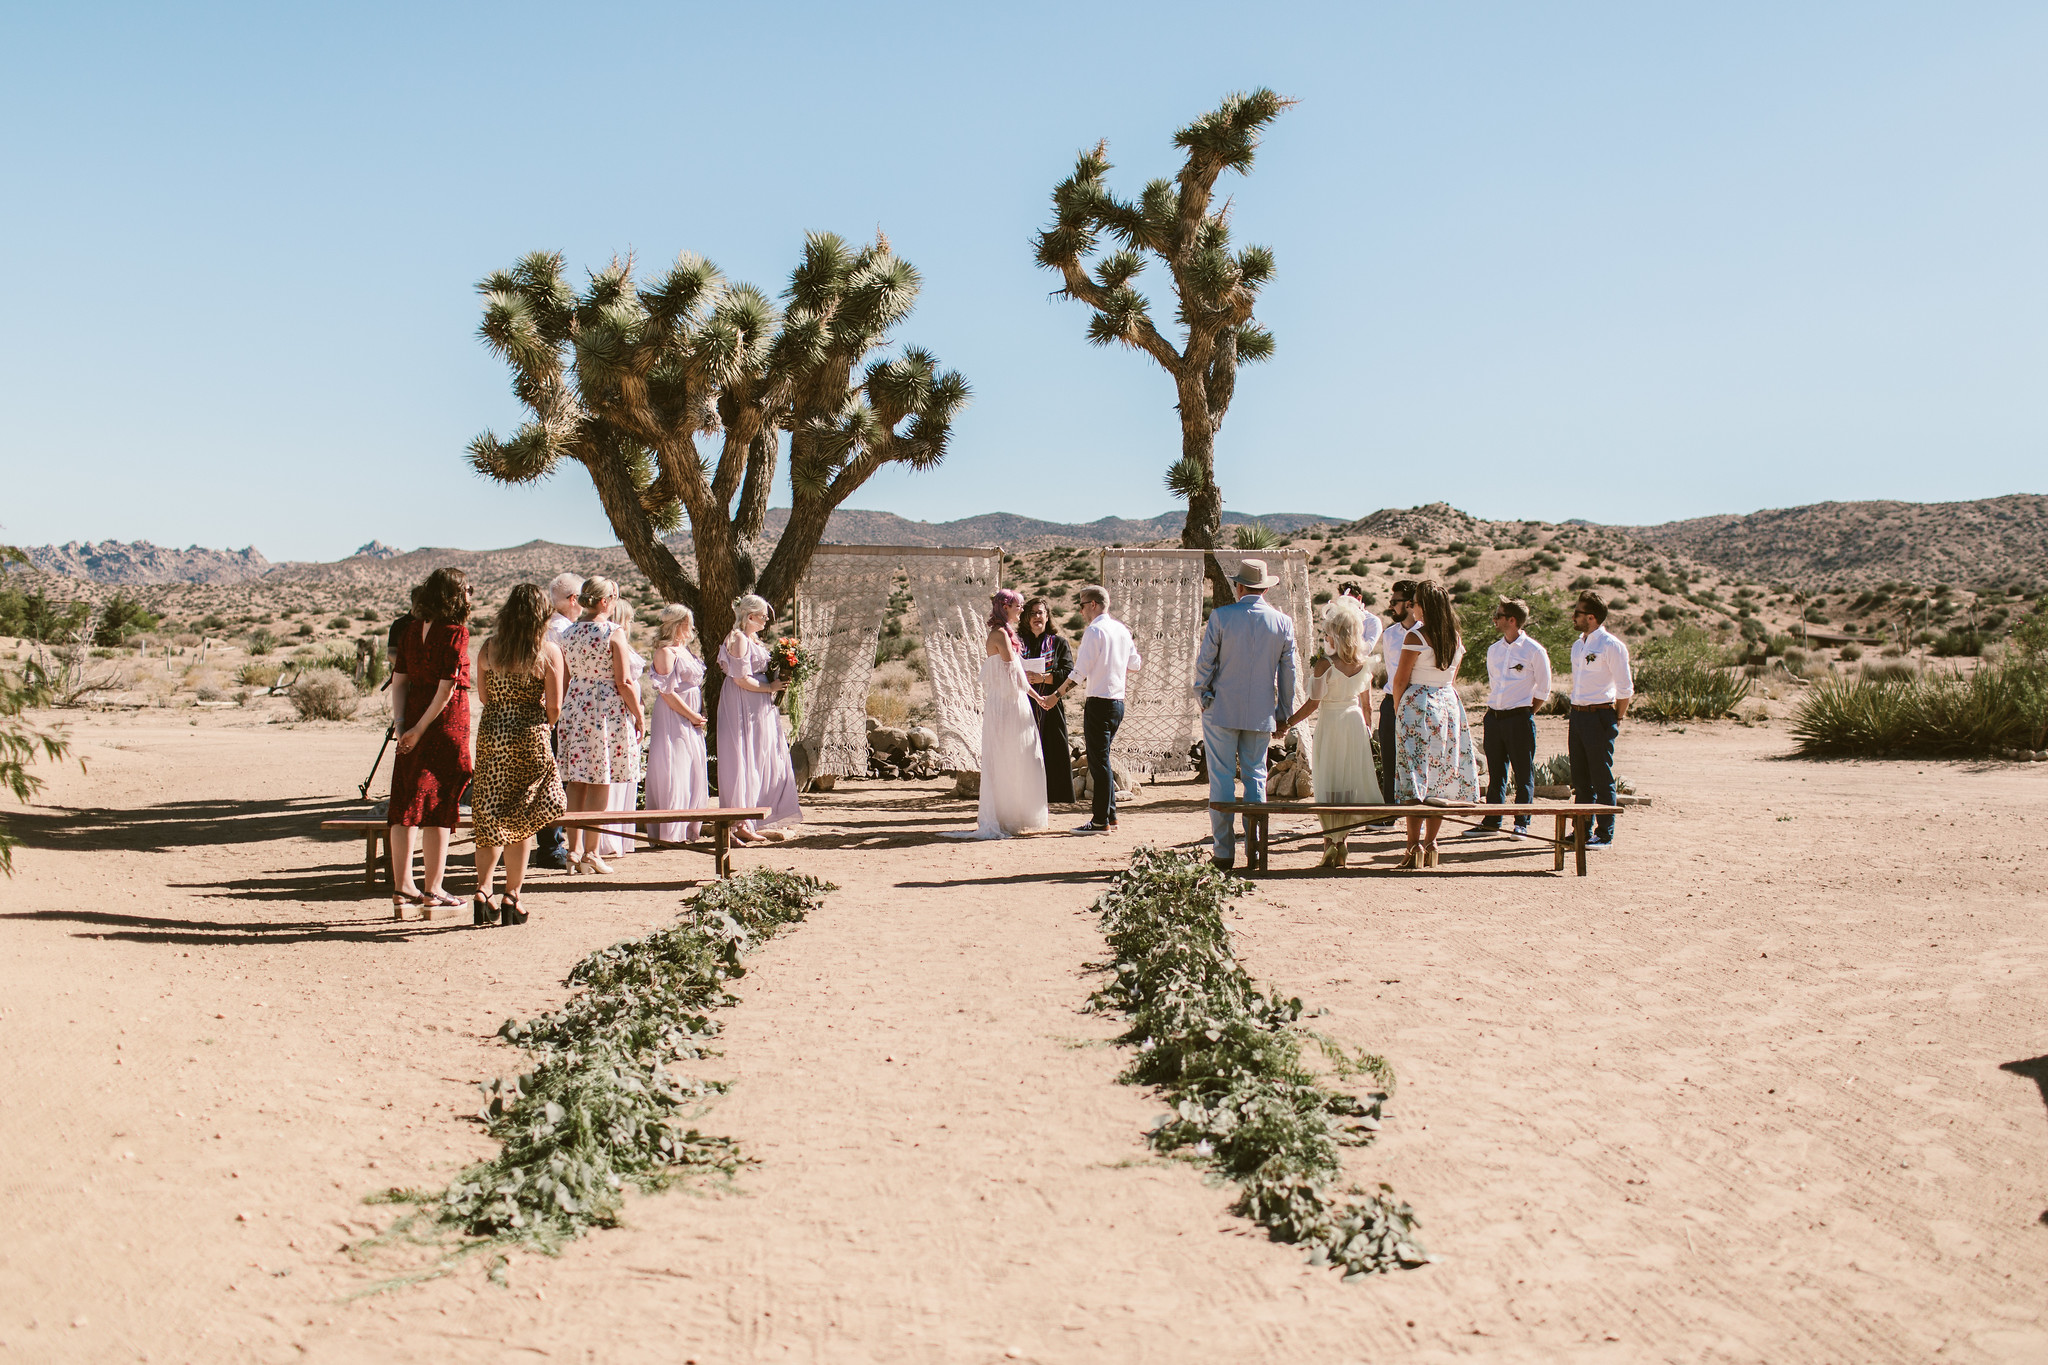 zoe-london-wedding-joshua-tree-7.jpg